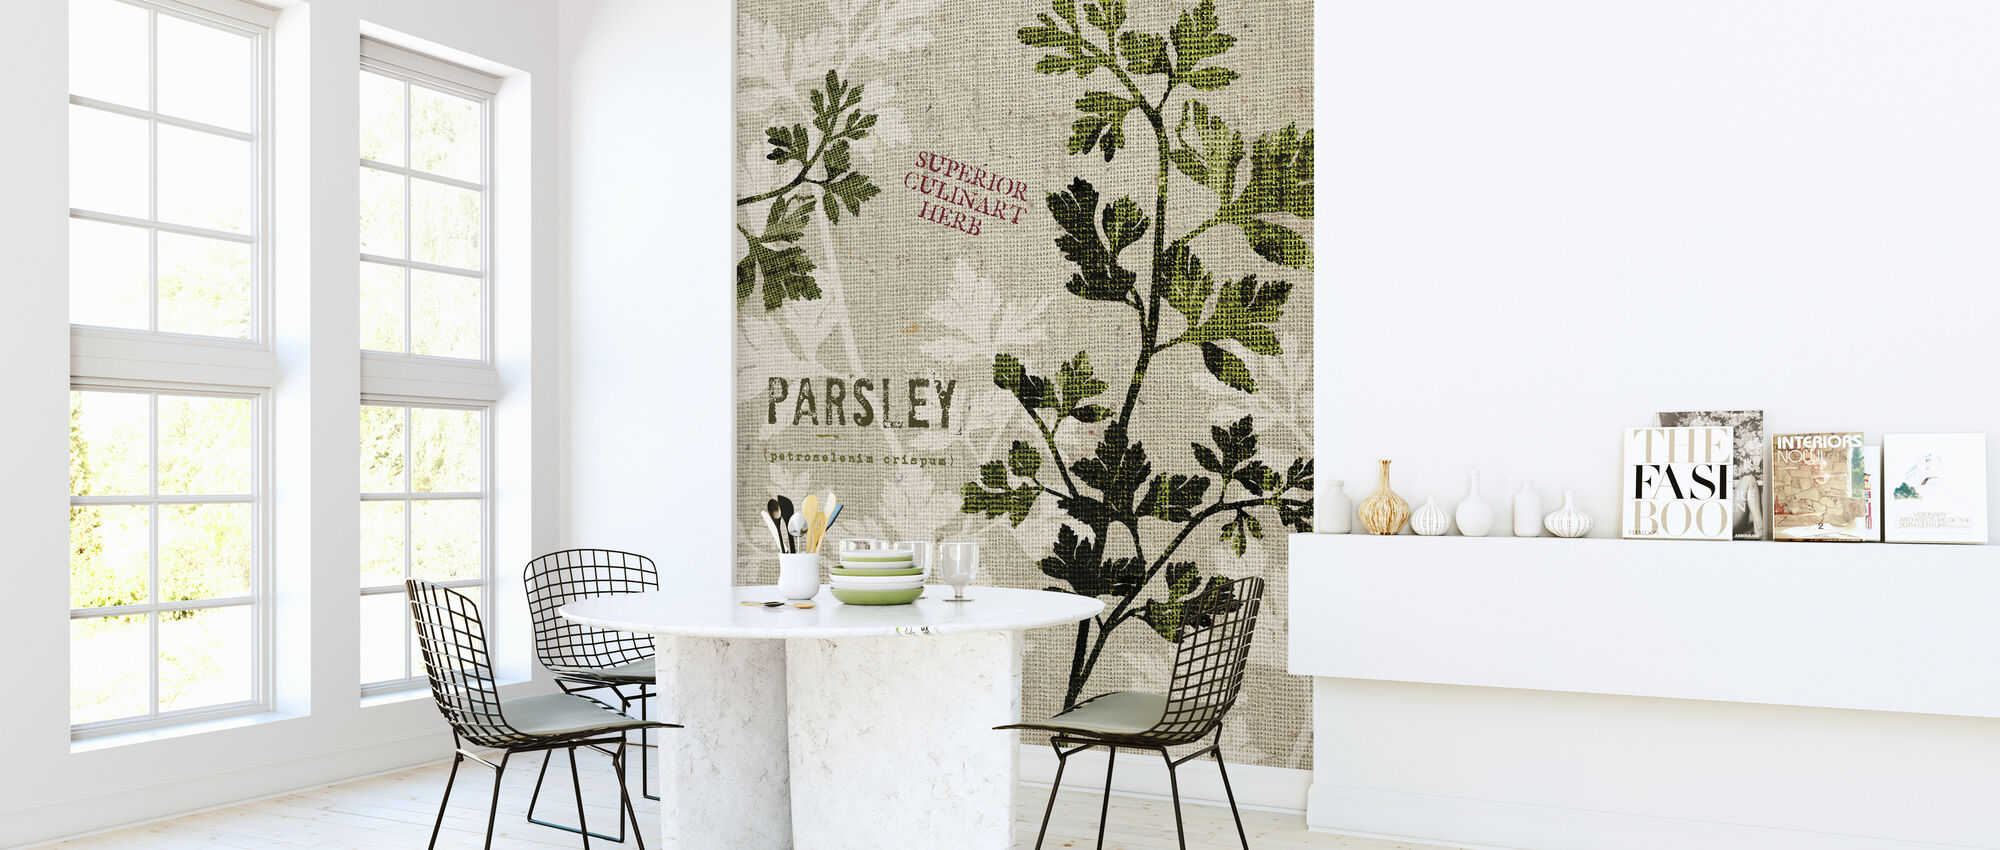 Organic Parsley - Wallpaper - Kitchen